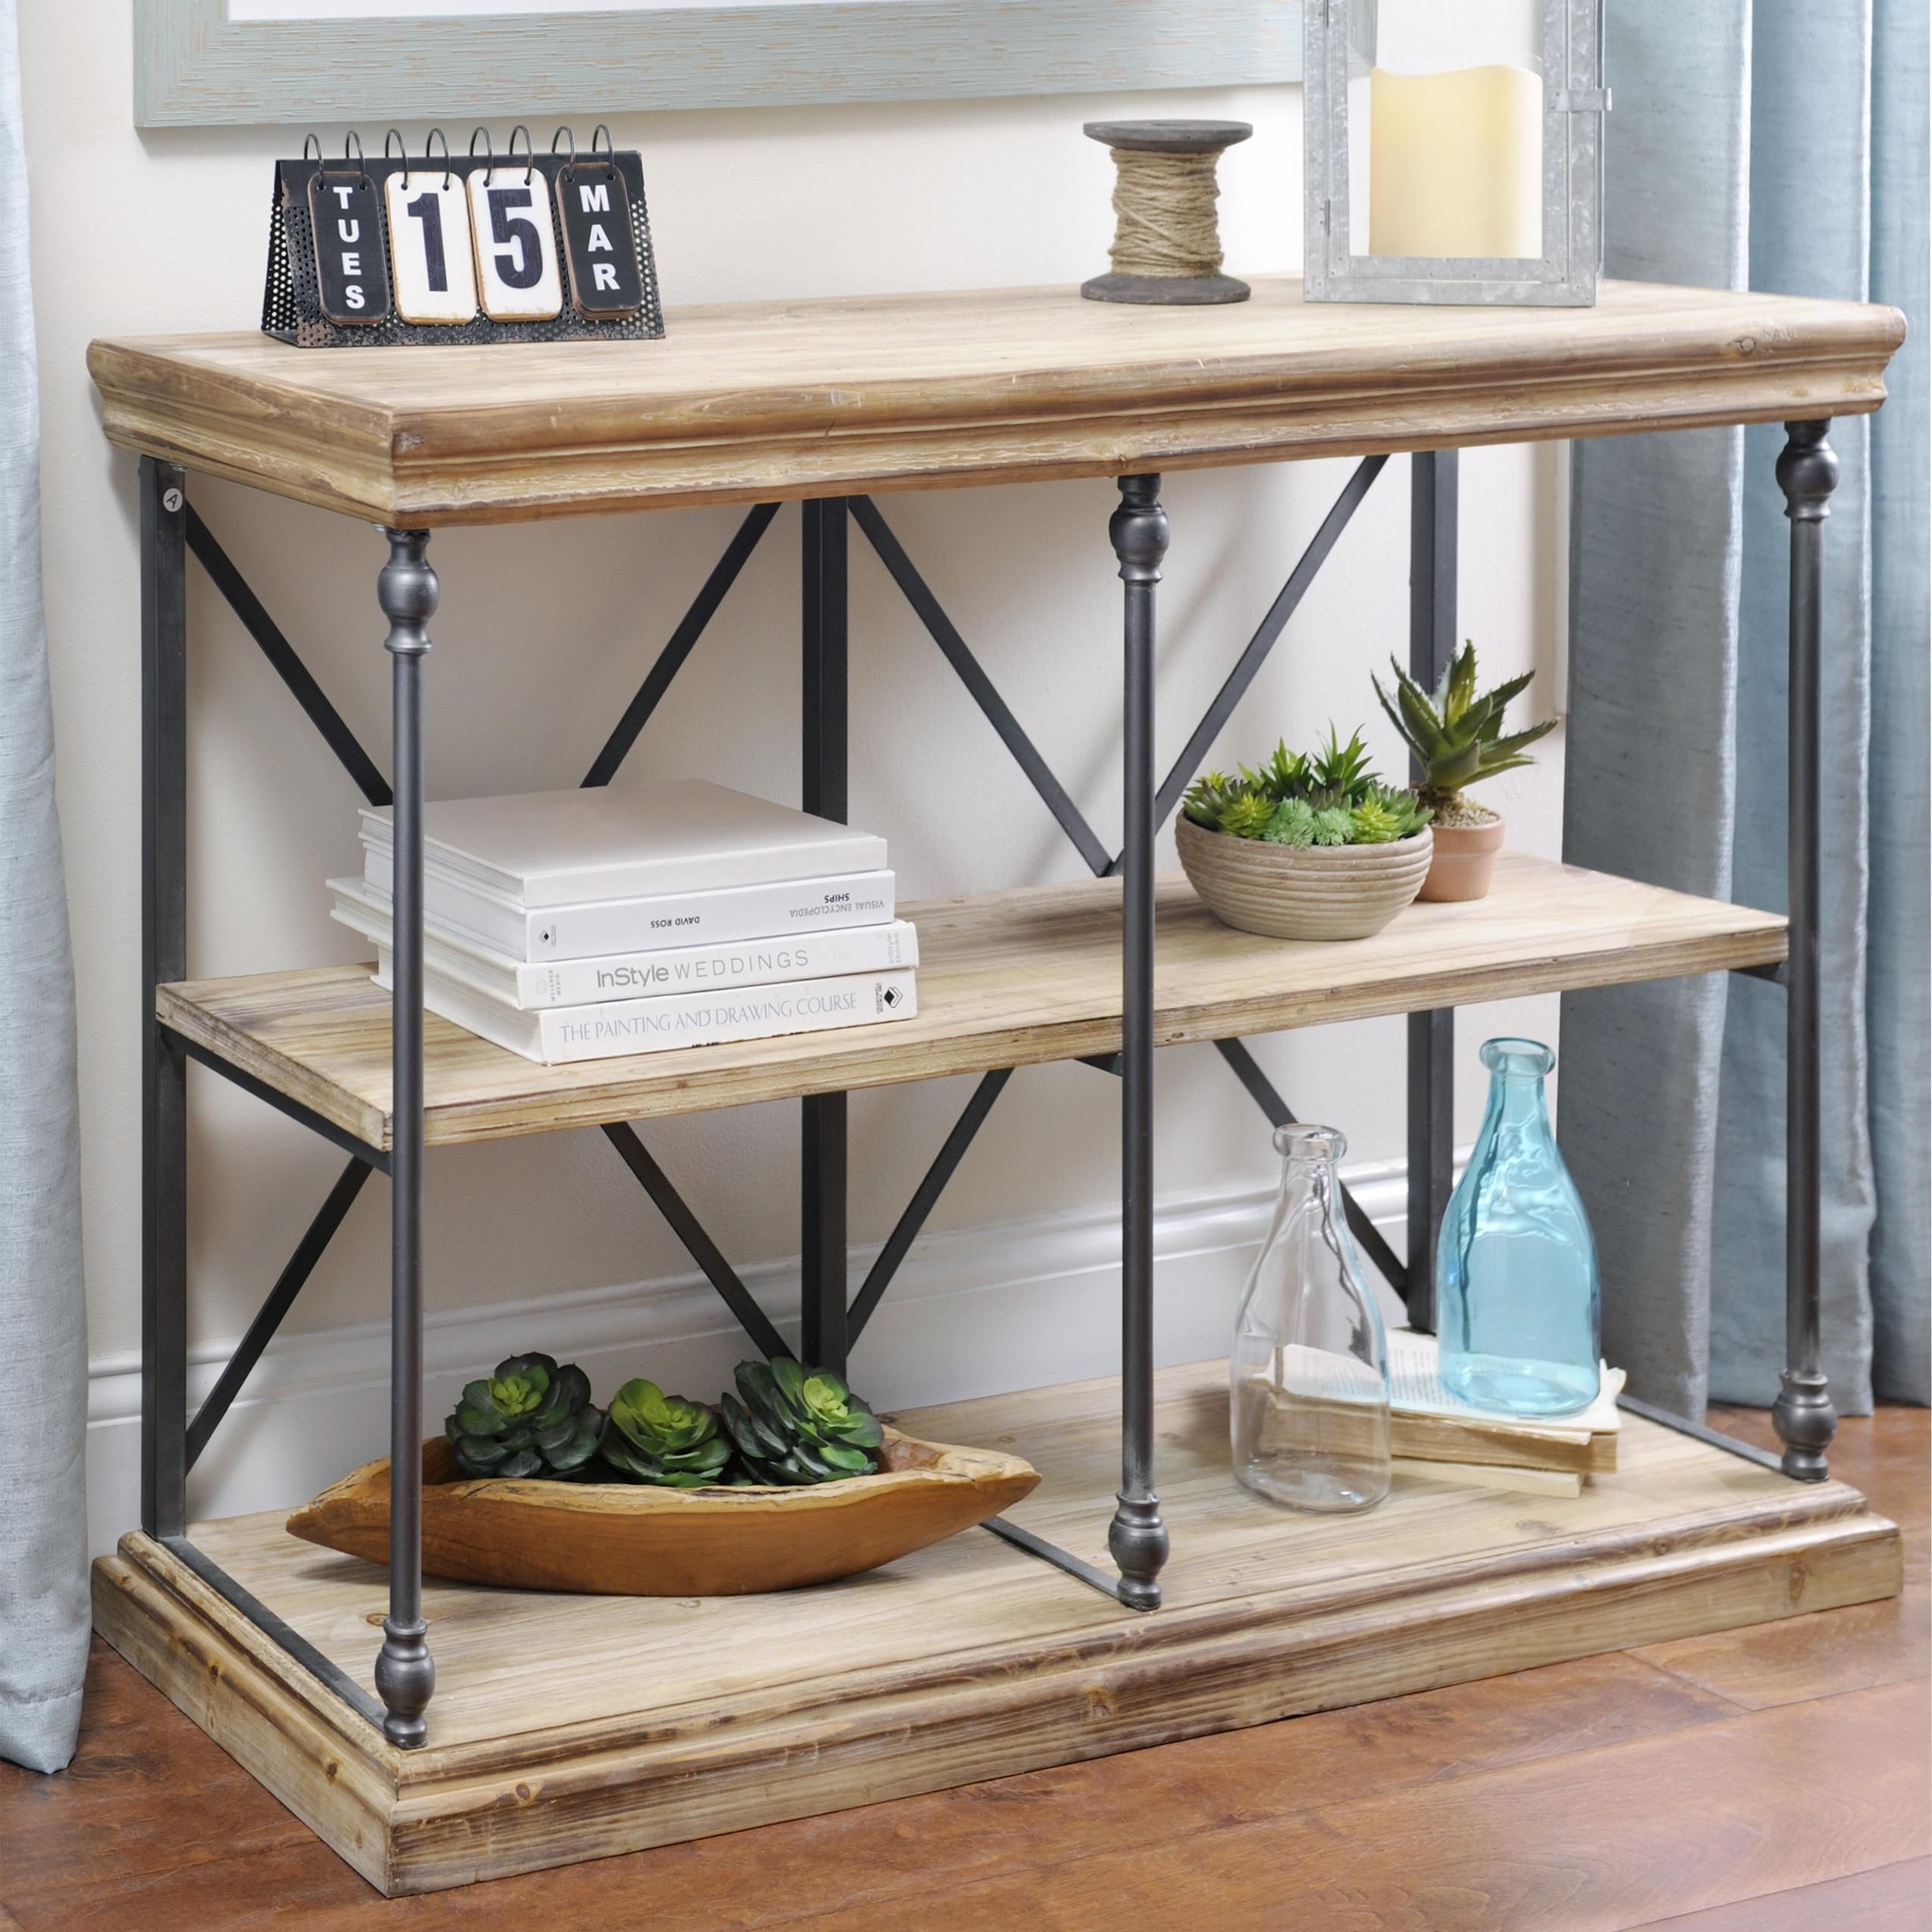 sonoma two tier console table reclaimed wood shelves wood shelf